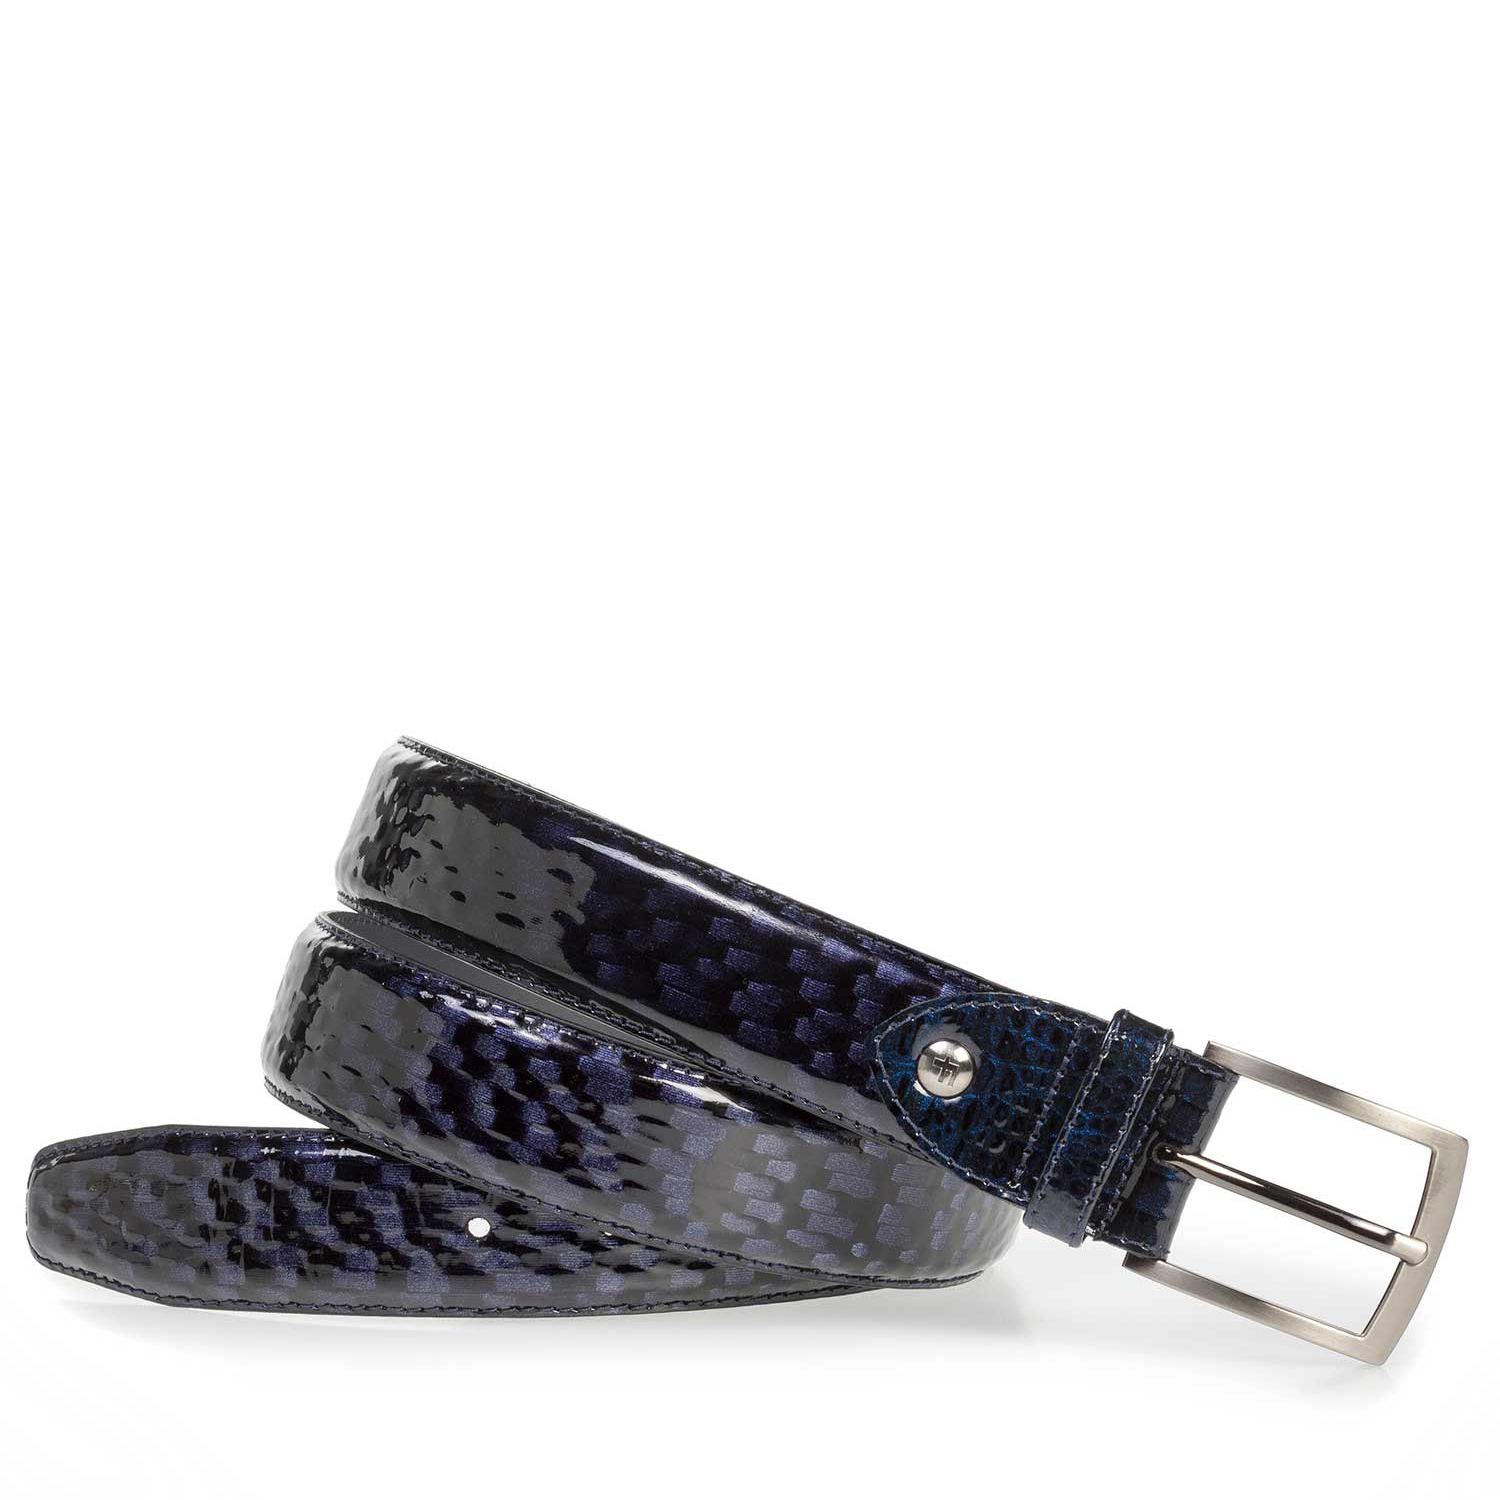 75201/40 - Premium blue printed patent leather belt